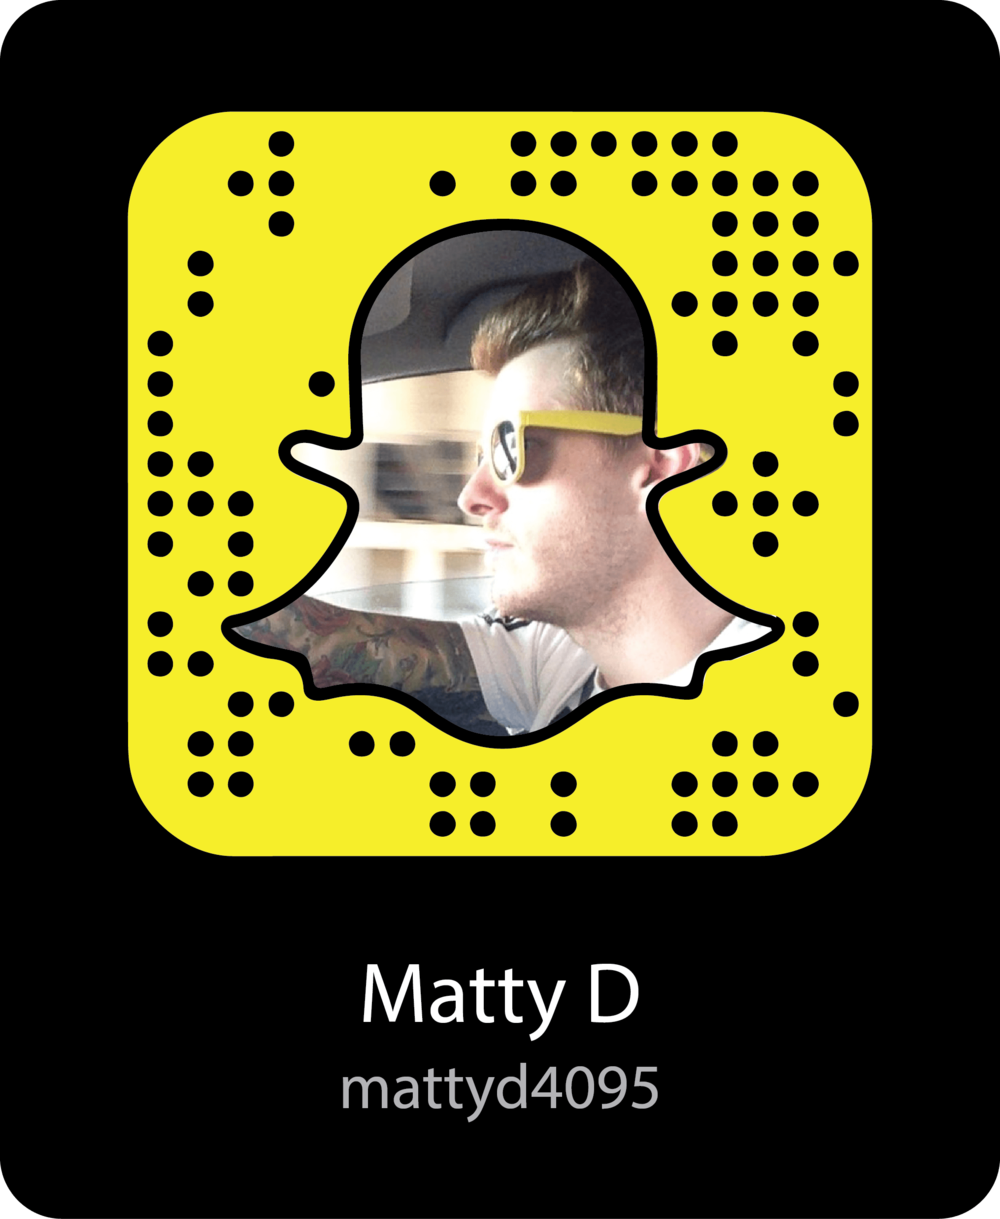 matty-d-comedians-snapchat-snapcode